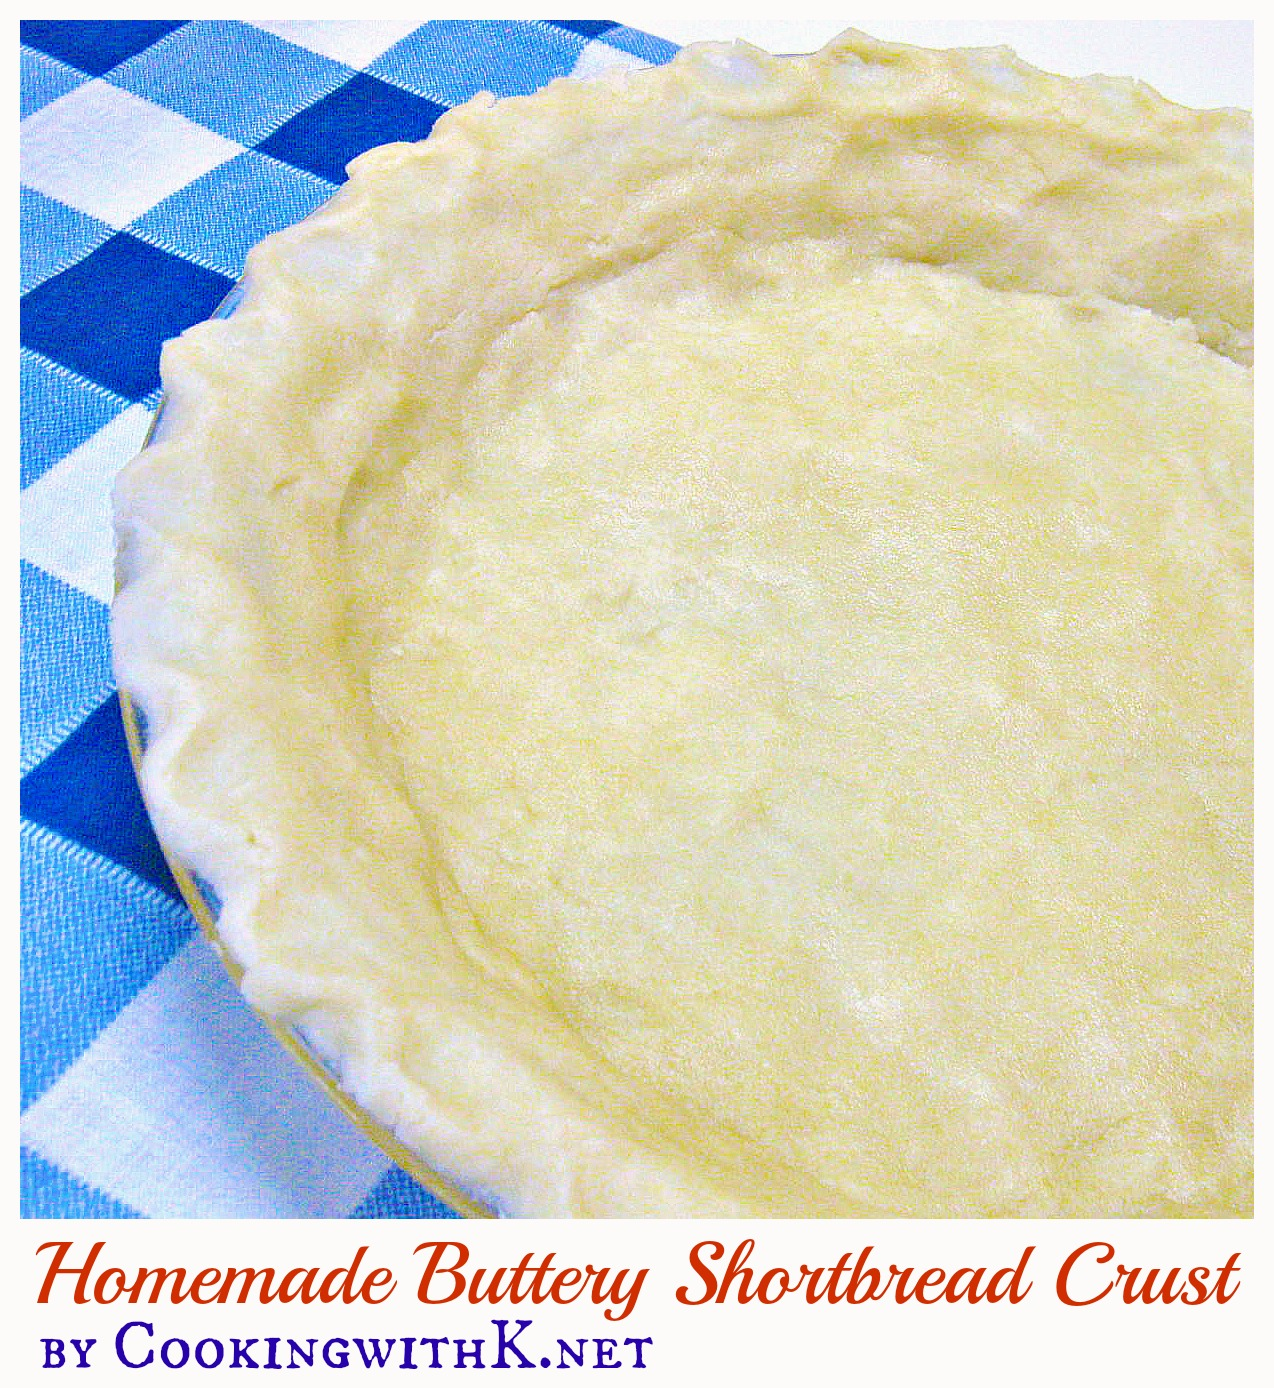 Cooking with K: Easy Homemade Buttery Shortbread Crust